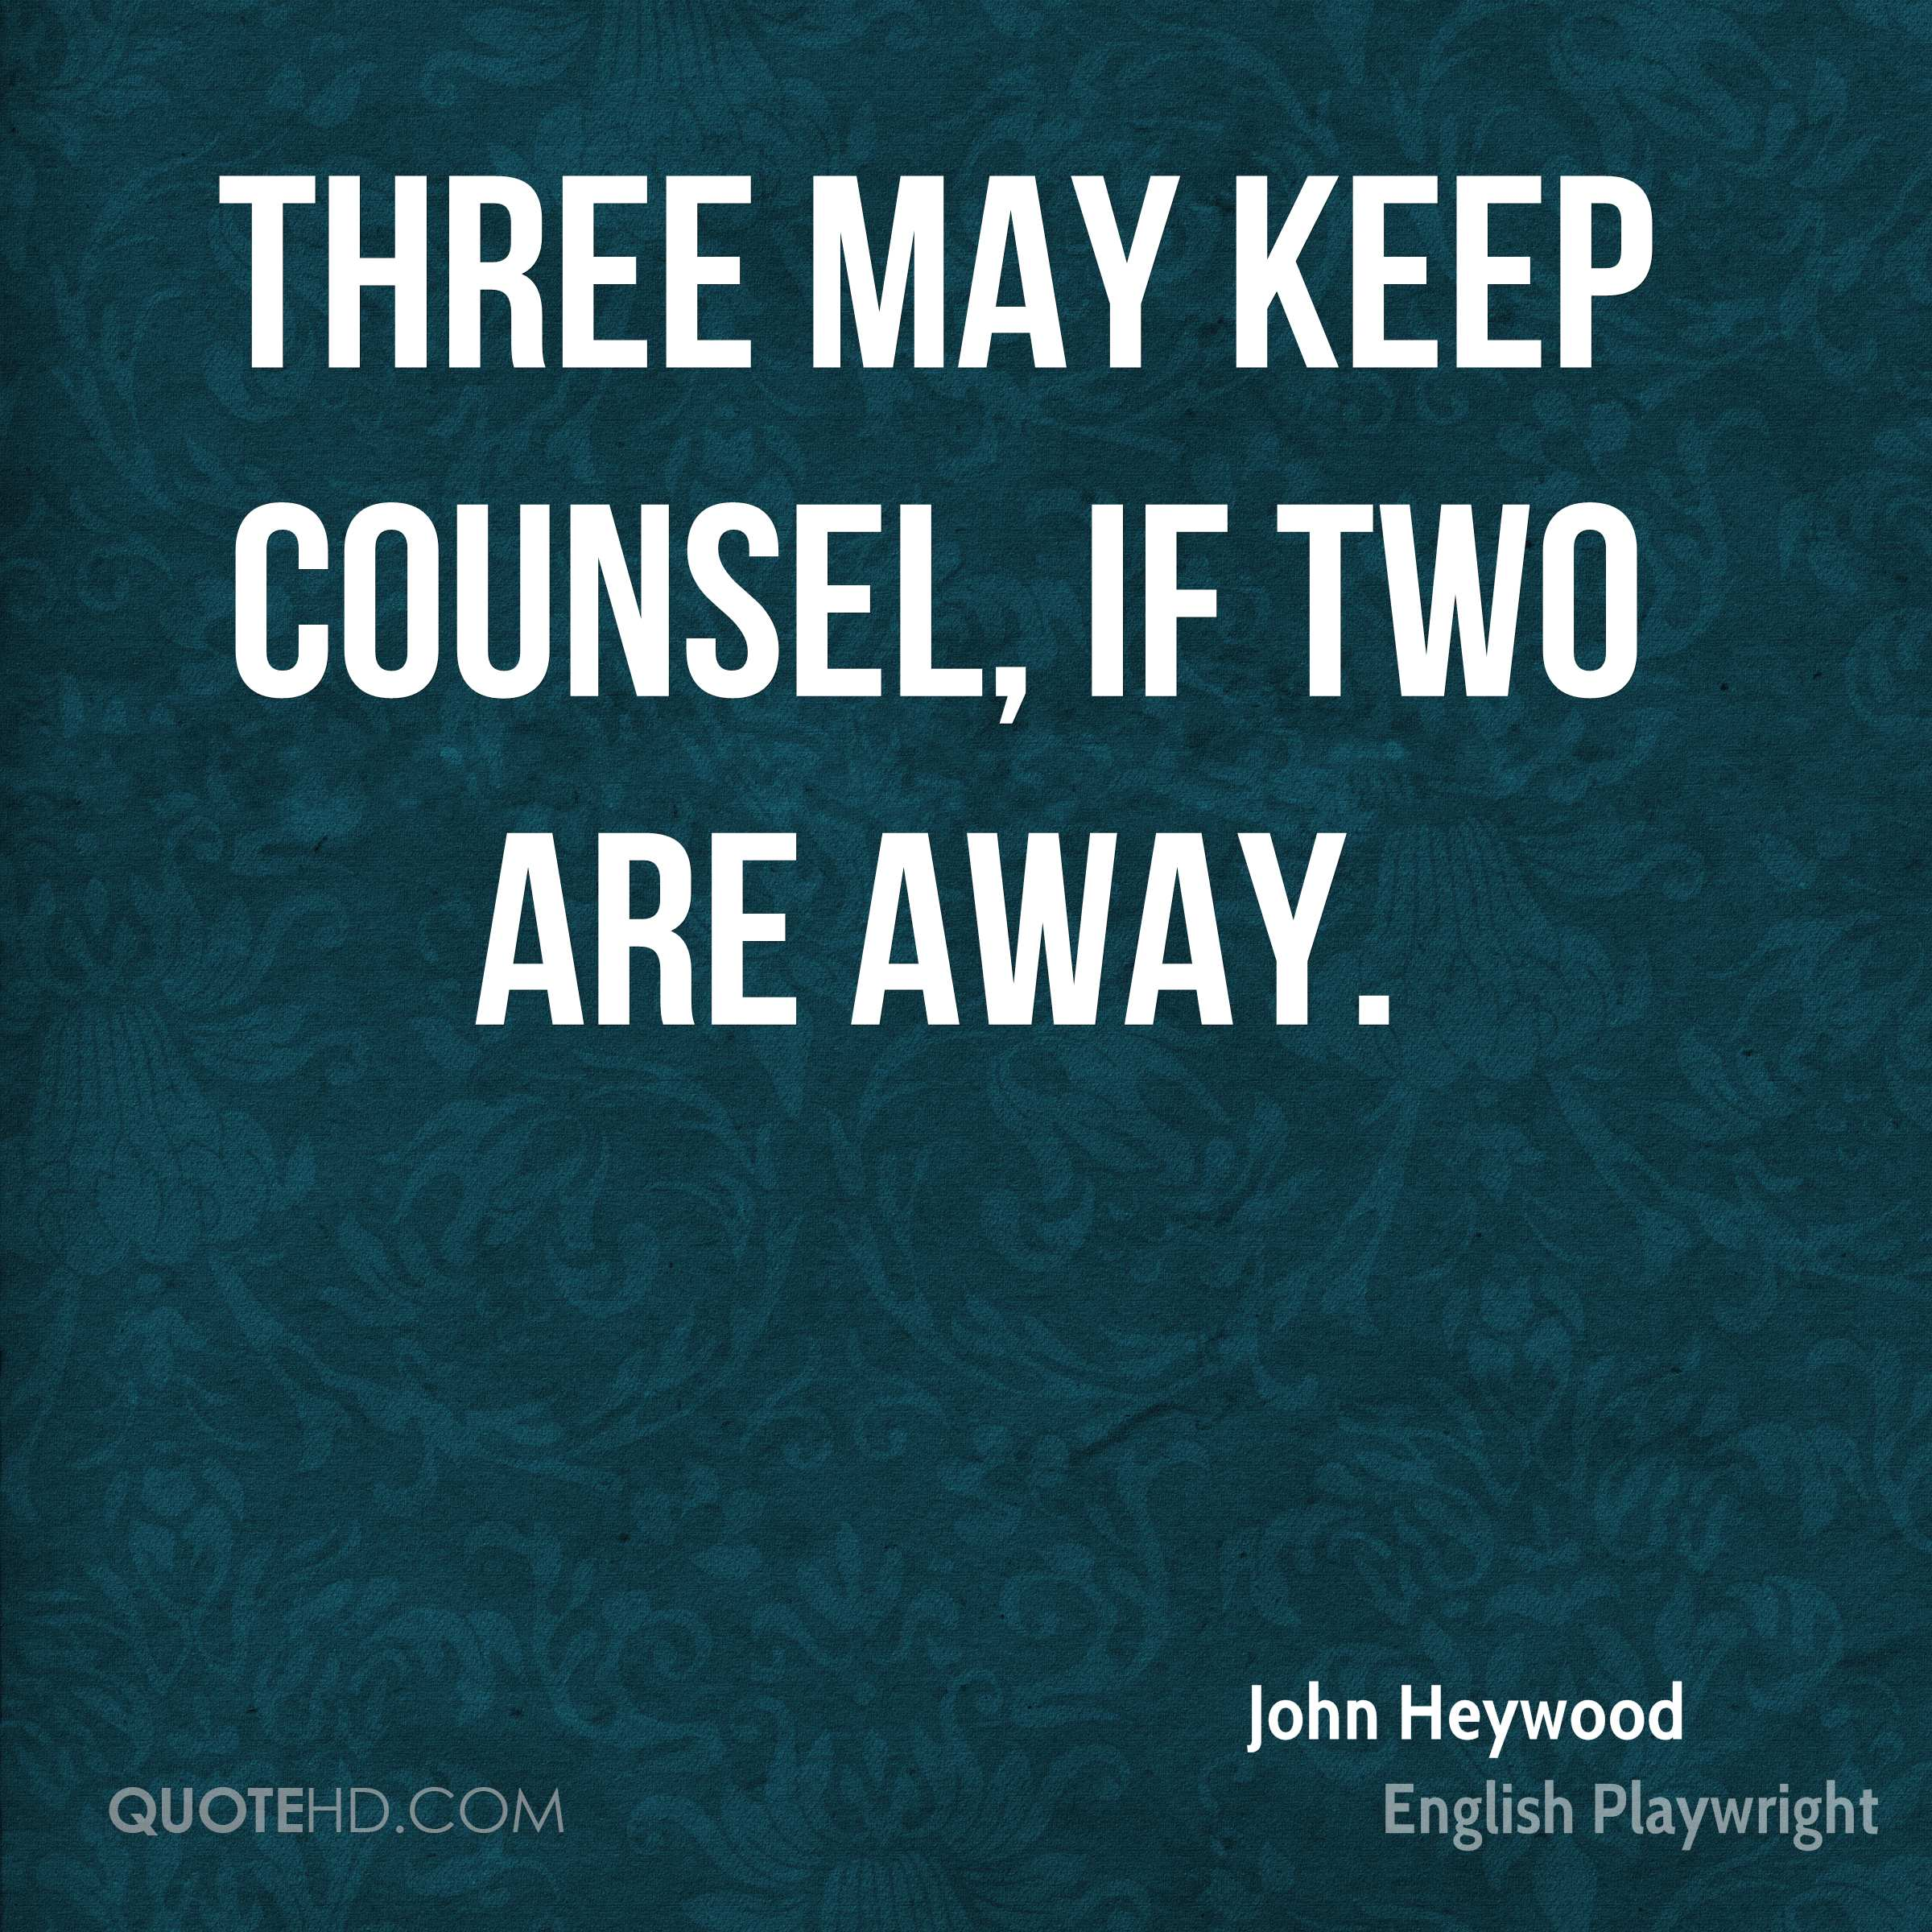 Three may keep counsel, if two are away.